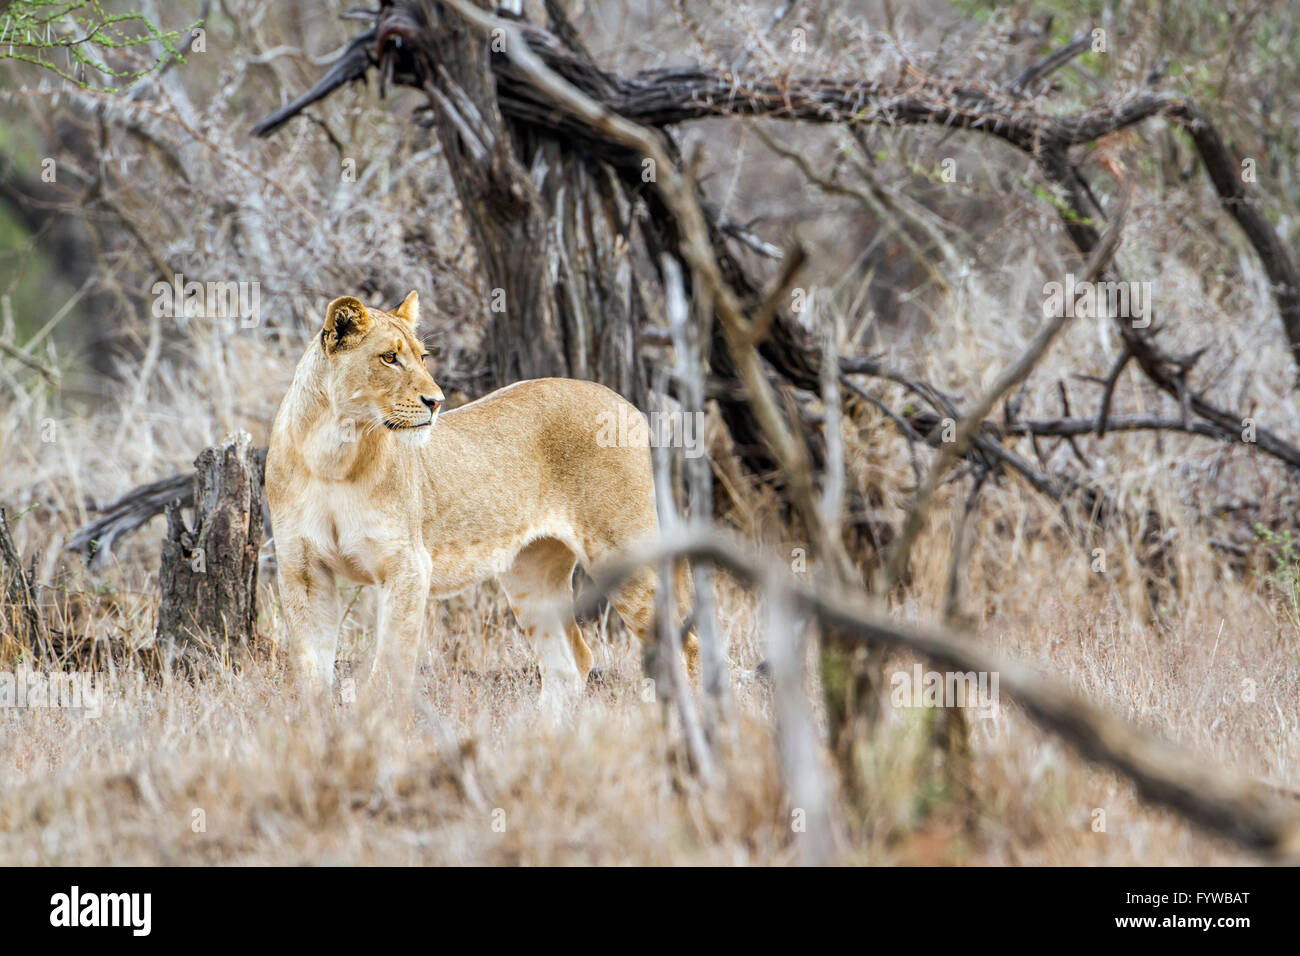 Lion Kruger national park, South Africa ; Specie Panthera leo family of felidae - Stock Image